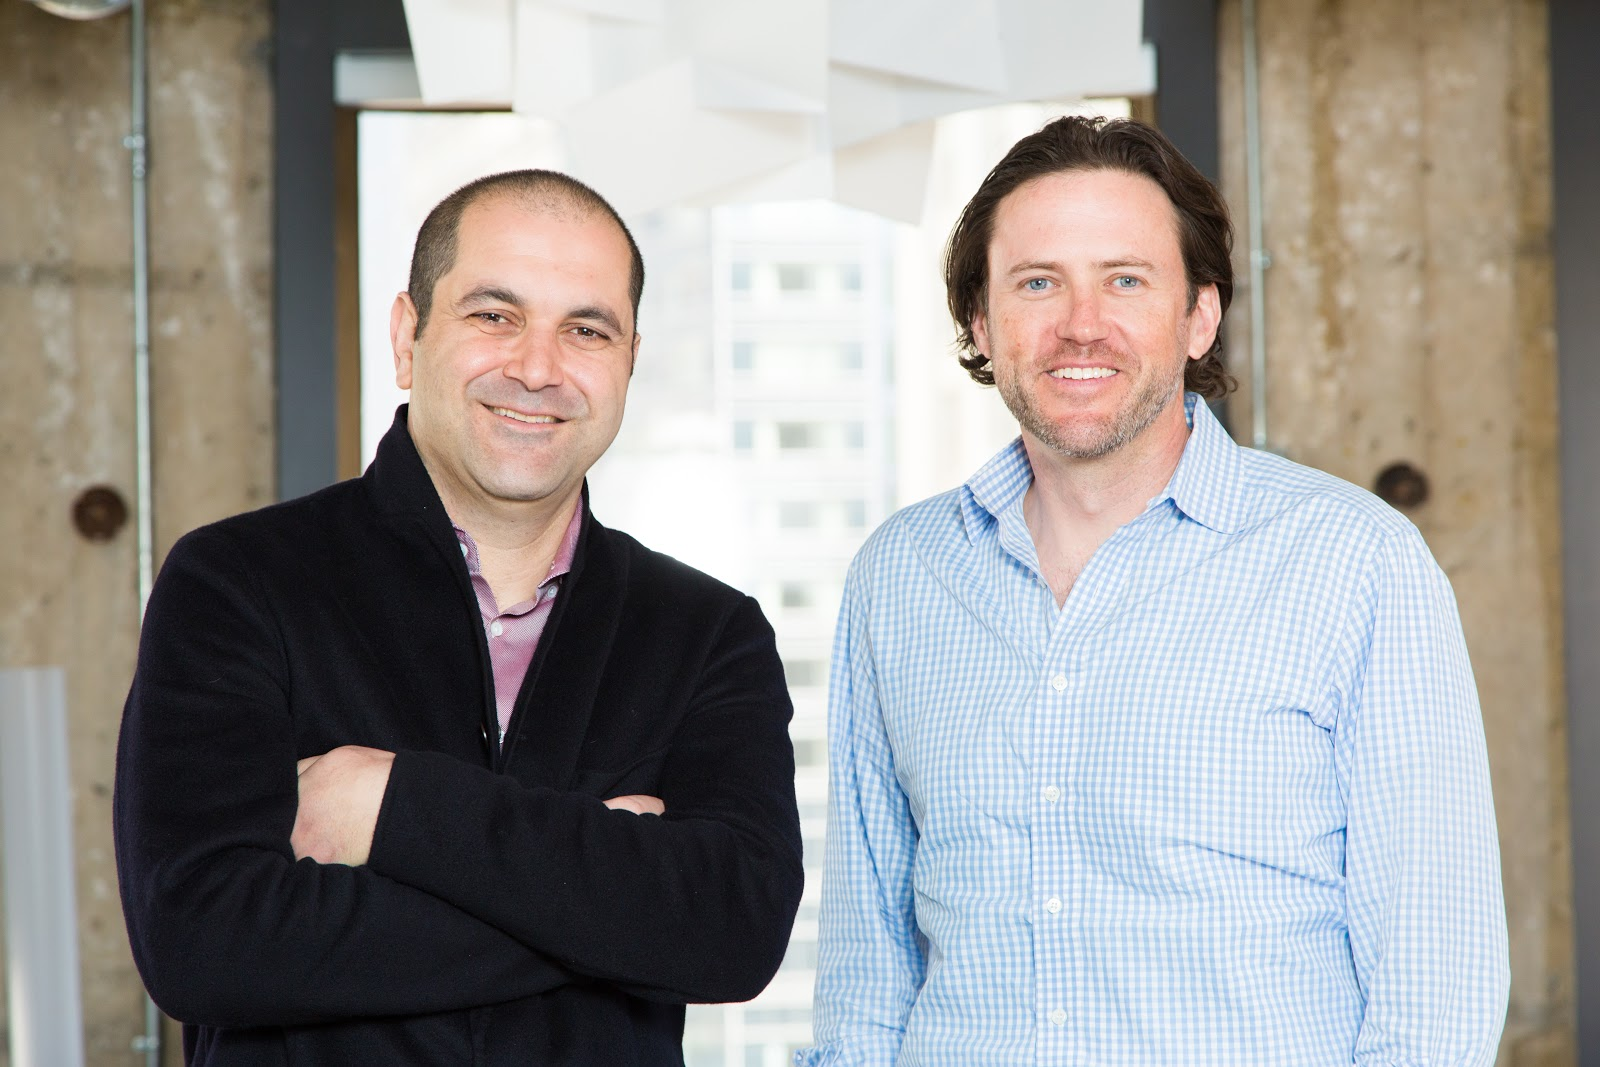 Shervin Pishever (left) and Scott Stanford (right), co-founders of Sherpa Capital.